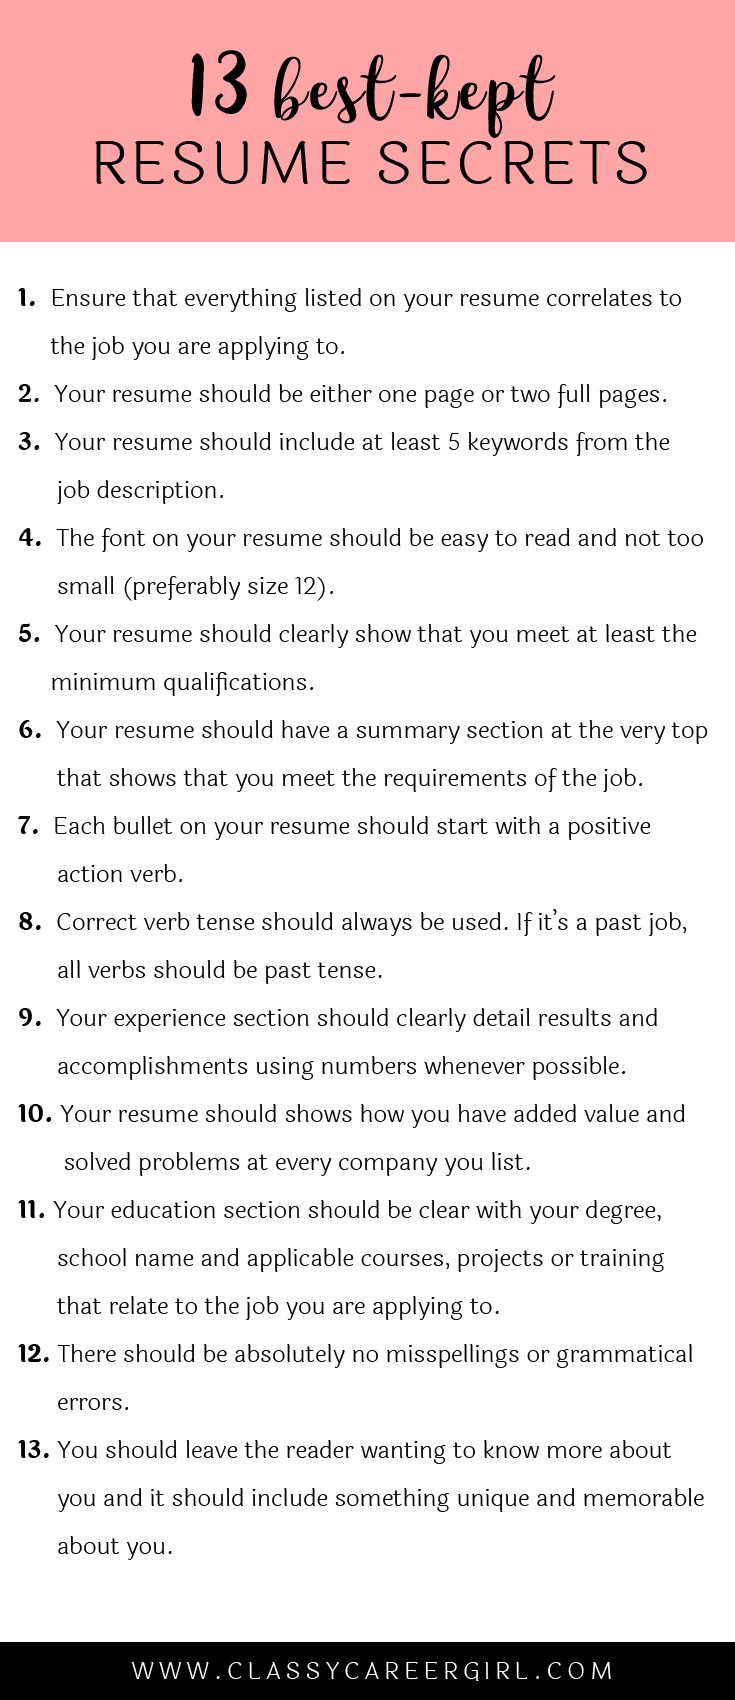 Opposenewapstandardsus  Pretty  Ideas About Resume On Pinterest  Cv Format Resume Cv And  With Exciting Some Hiring Managers Will Toss Your Resume Out If You Dont Know These  With Divine Resume Temple Also Career Objectives For Resumes In Addition Resume Accent Marks And Whats A Cover Letter For A Resume As Well As Basic Resume Sample Additionally Google Resume Examples From Pinterestcom With Opposenewapstandardsus  Exciting  Ideas About Resume On Pinterest  Cv Format Resume Cv And  With Divine Some Hiring Managers Will Toss Your Resume Out If You Dont Know These  And Pretty Resume Temple Also Career Objectives For Resumes In Addition Resume Accent Marks From Pinterestcom